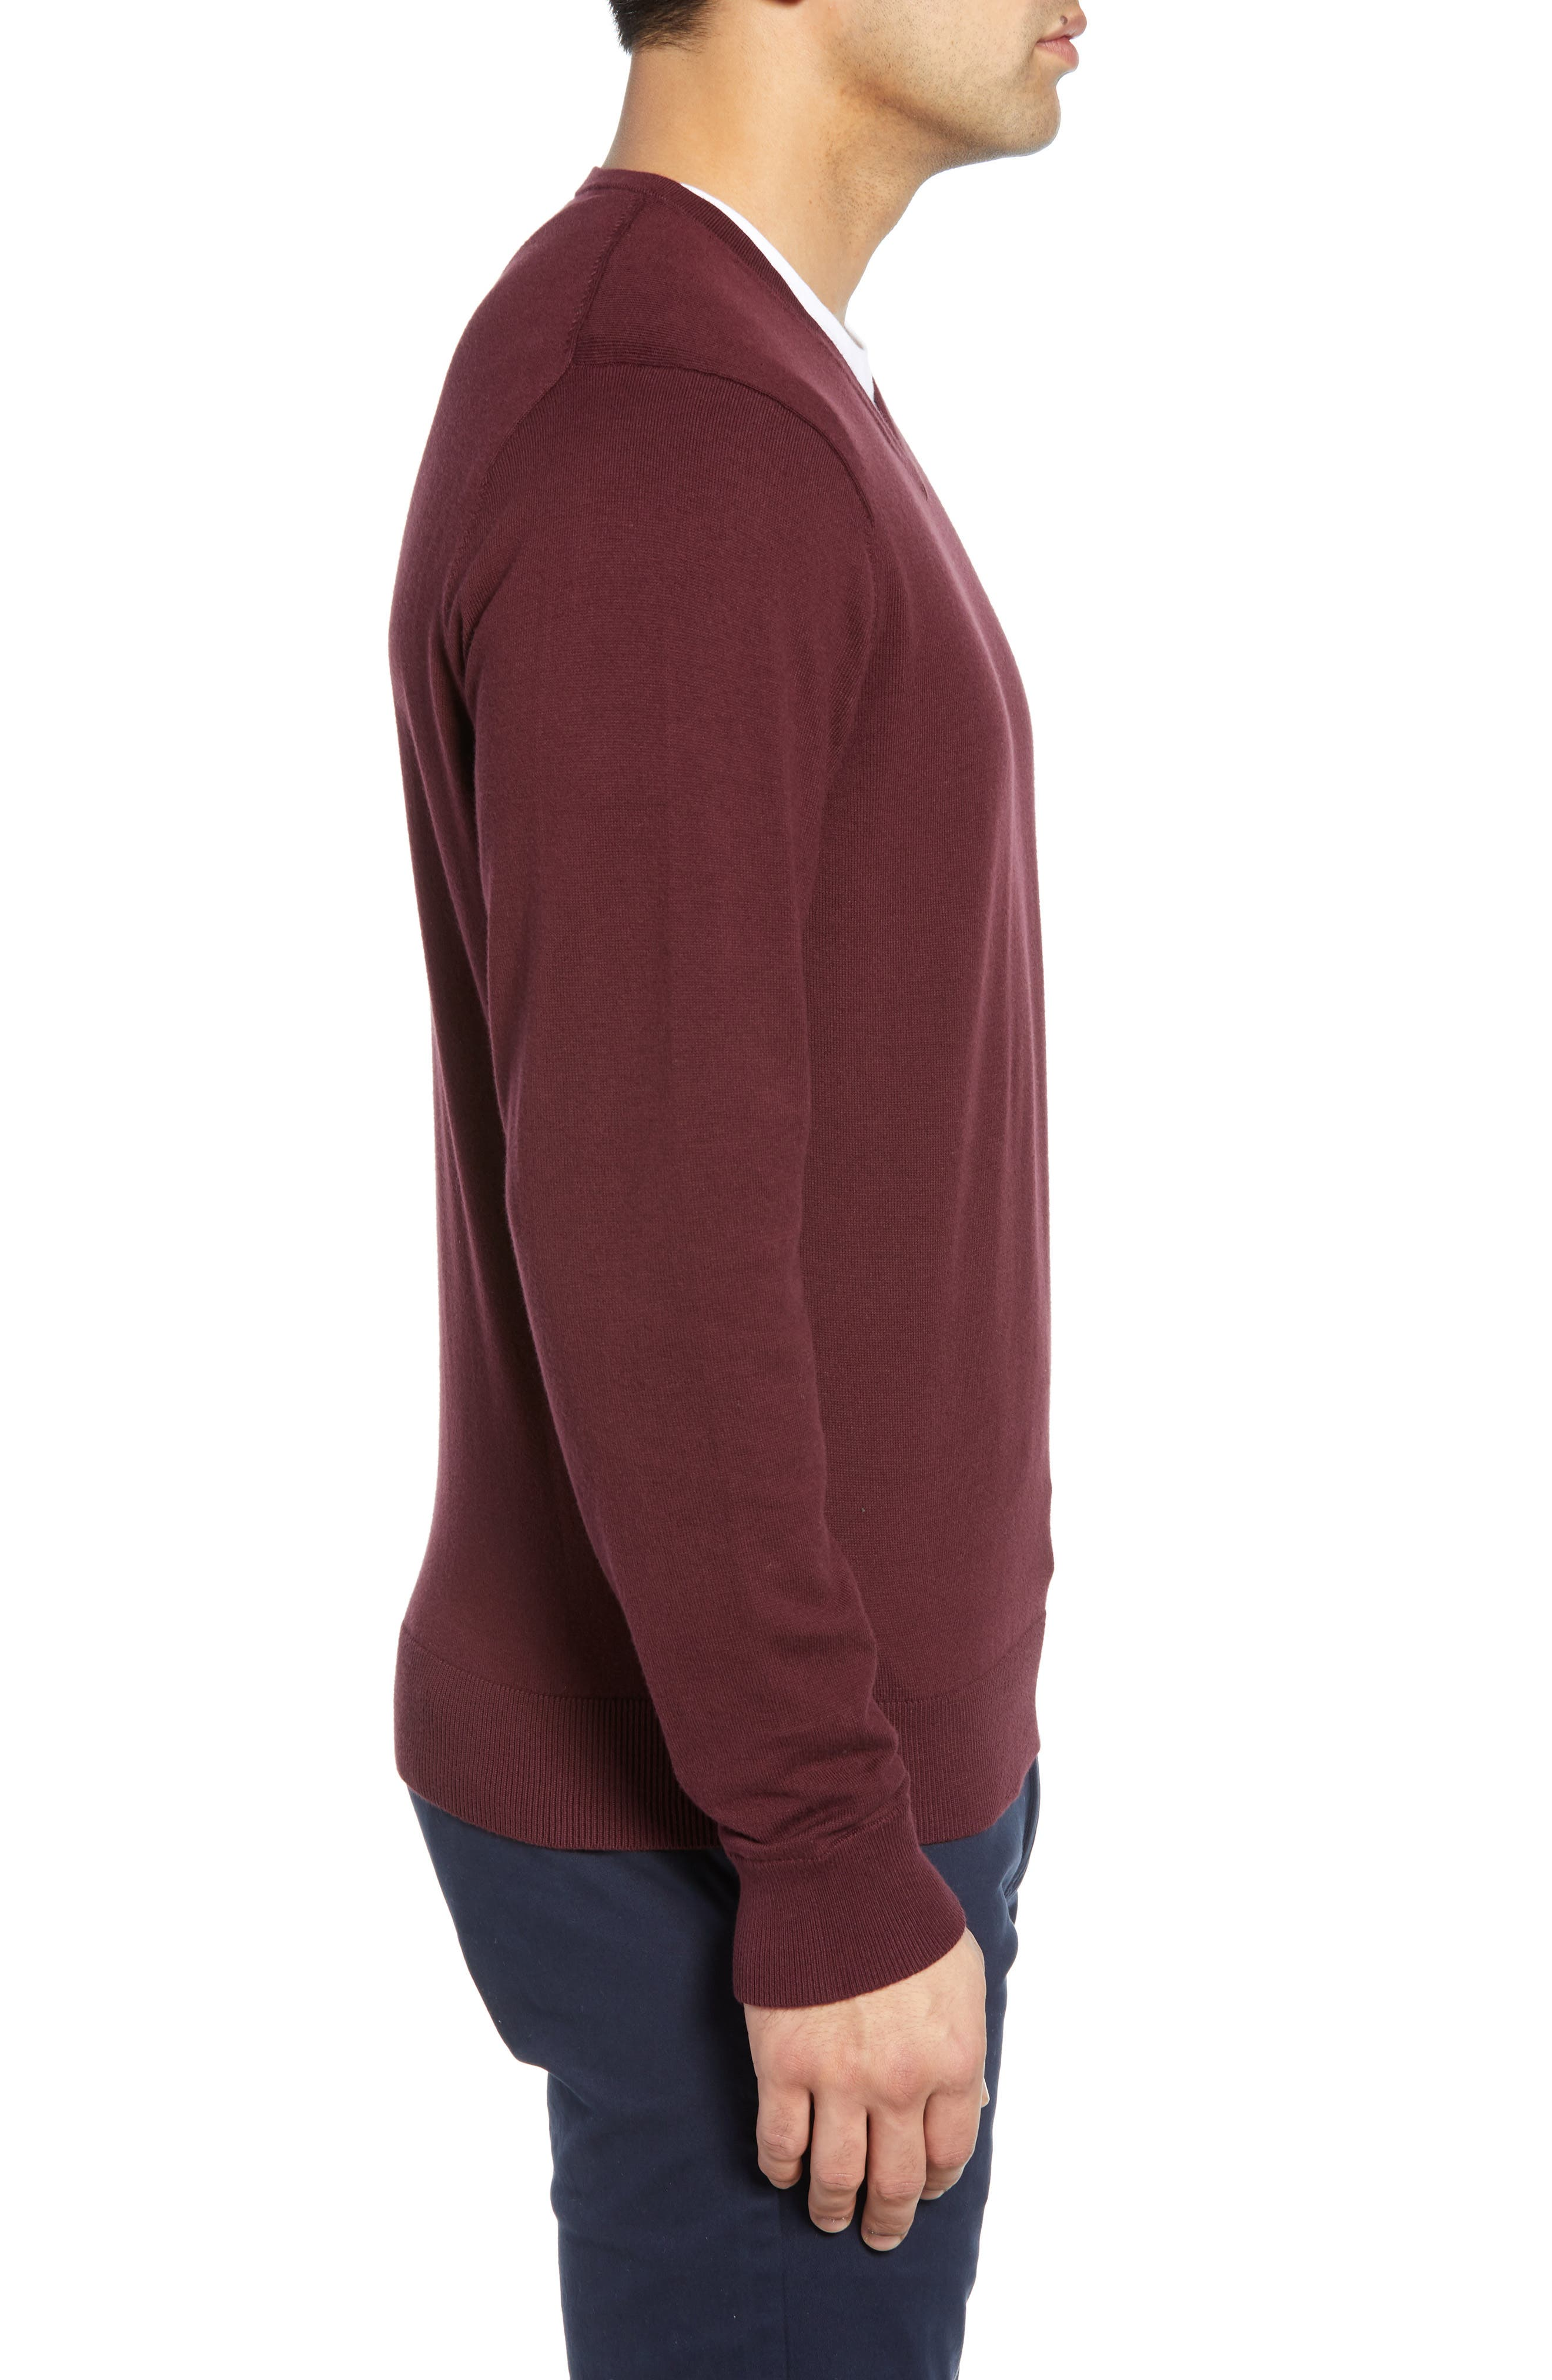 CUTTER & BUCK, Lakemont V-Neck Sweater, Alternate thumbnail 3, color, BORDEAUX